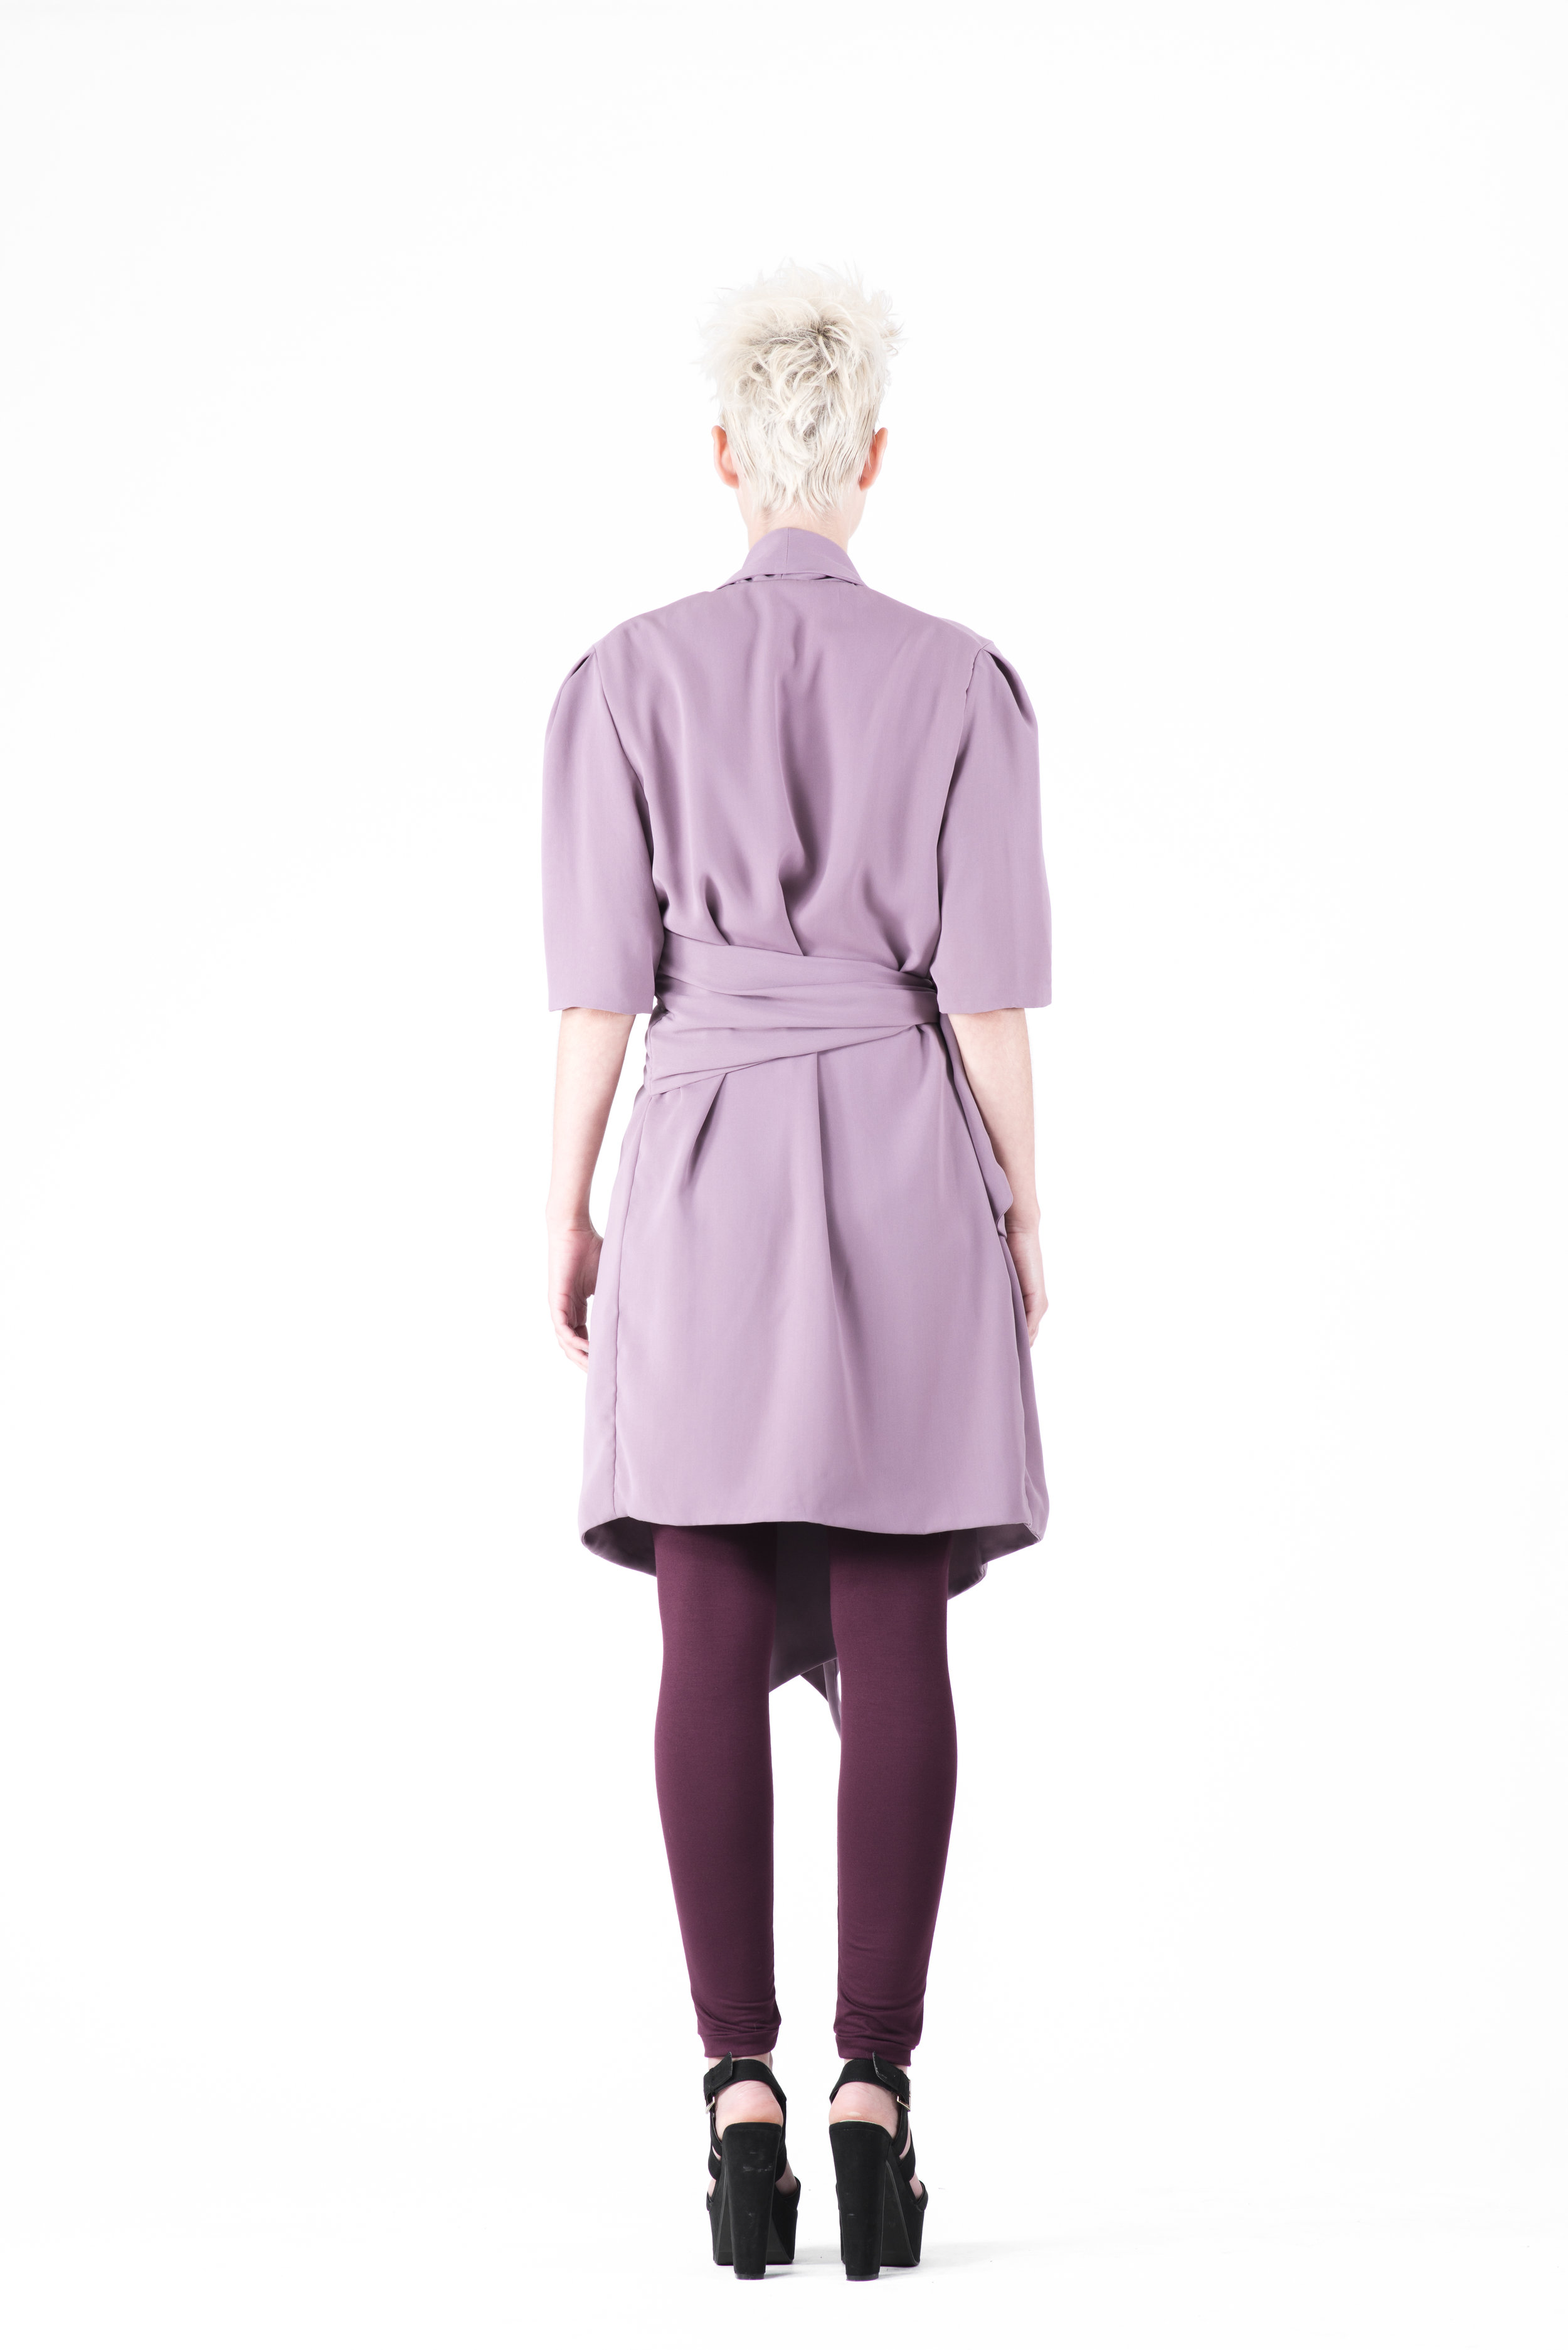 zaramia-ava-zaramiaava-leeds-fashion-designer-ethical-sustainable-tailored-minimalist-maika-mauve-dress-jacket-dress-versatile-rei-plum-legginges-drape-cowl-styling-womenswear-models-photoshoot-68